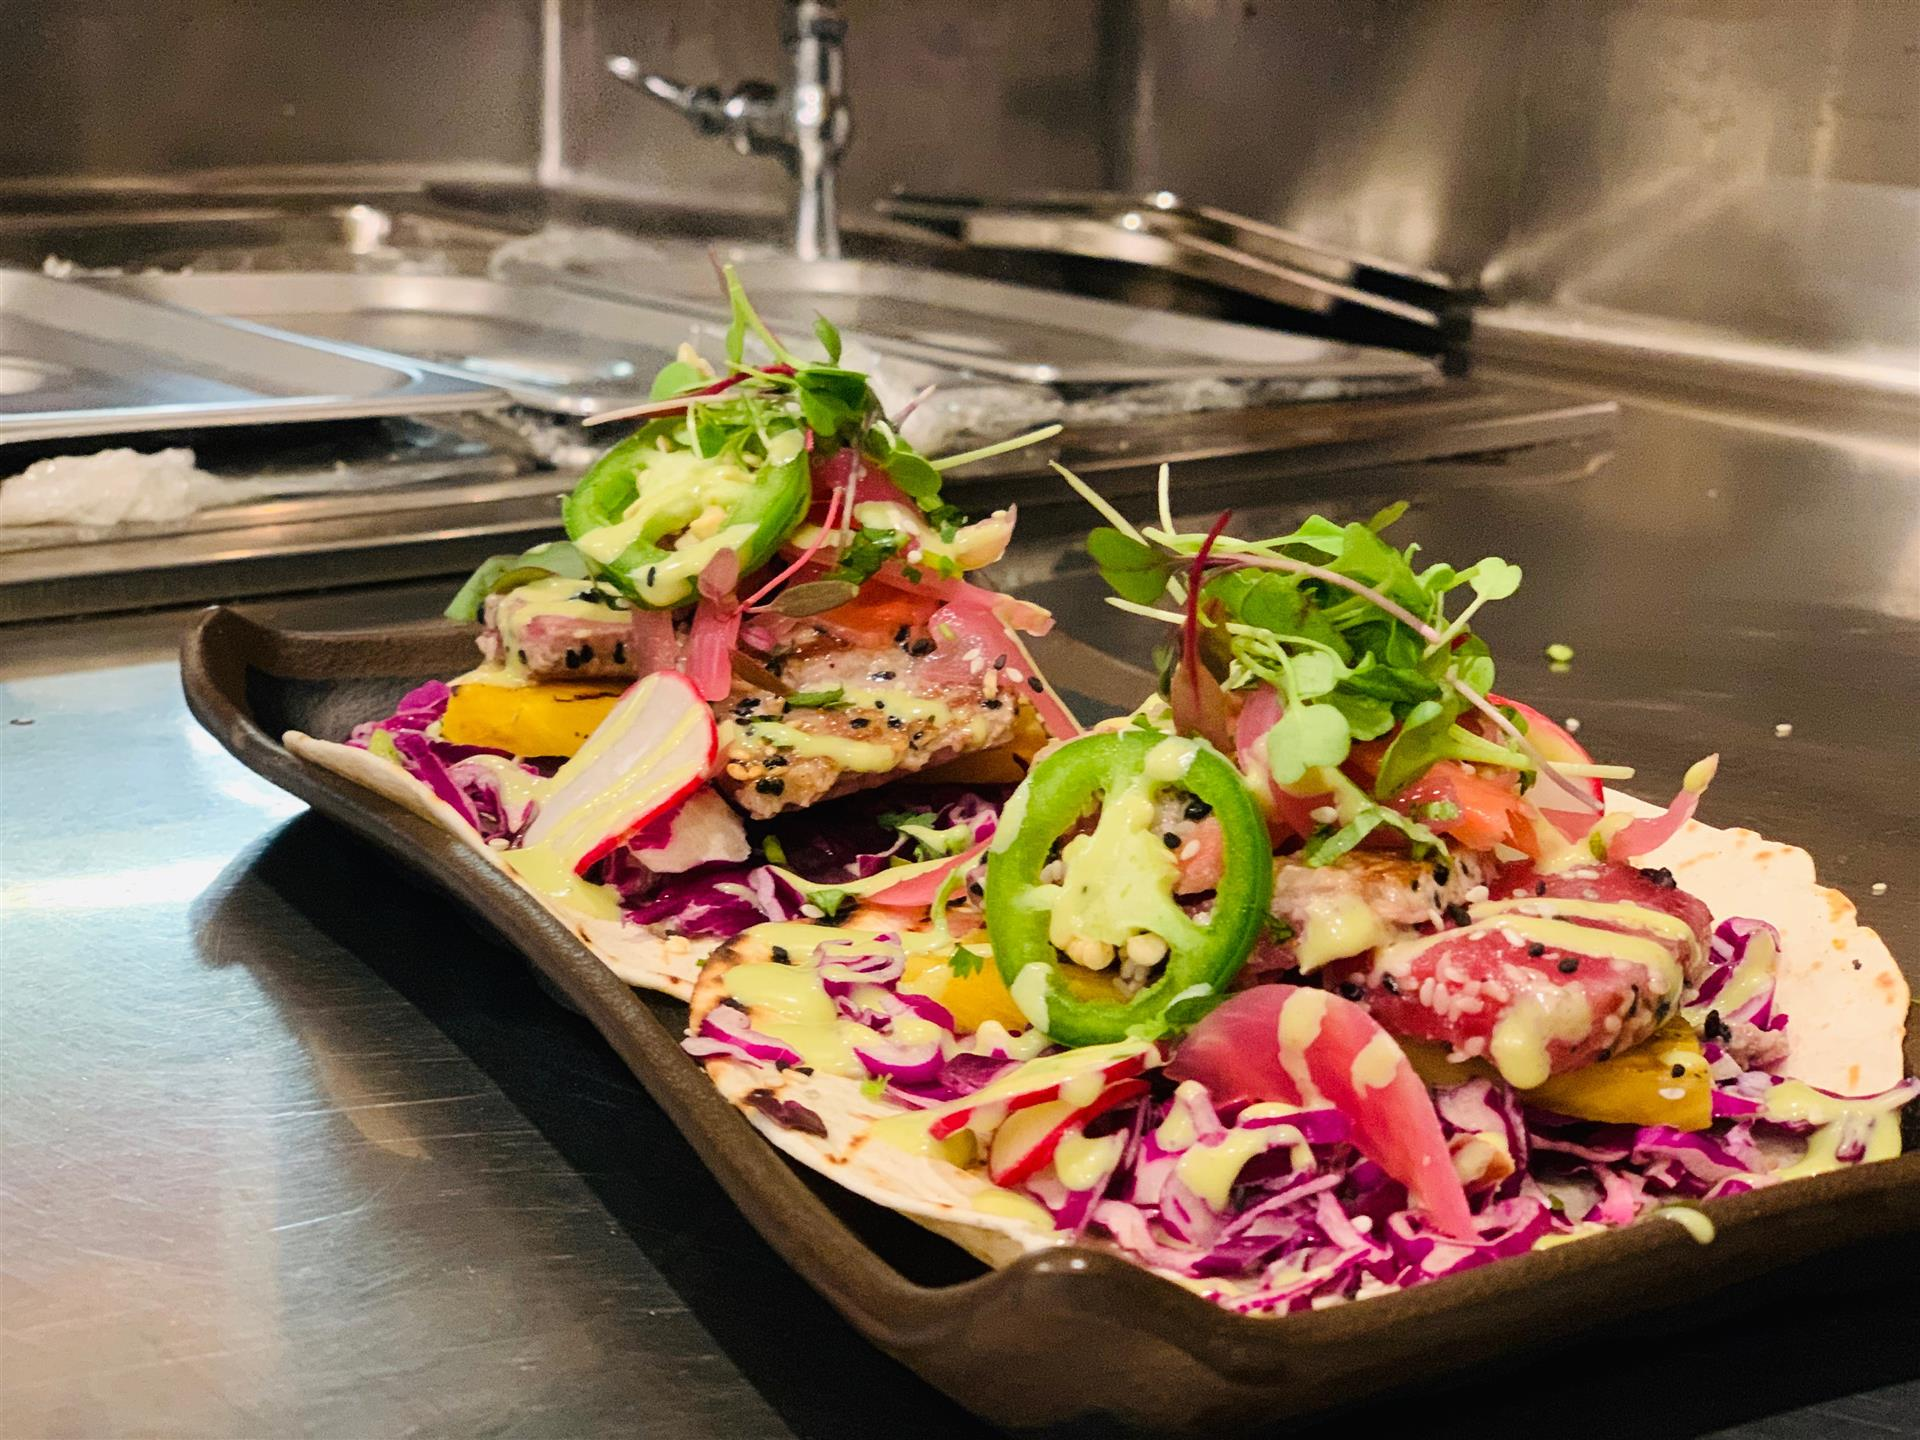 Two Seared ahi tuna tacos with red cabbage, pineapple, pickled onion & cream sauce, sesame seeds.